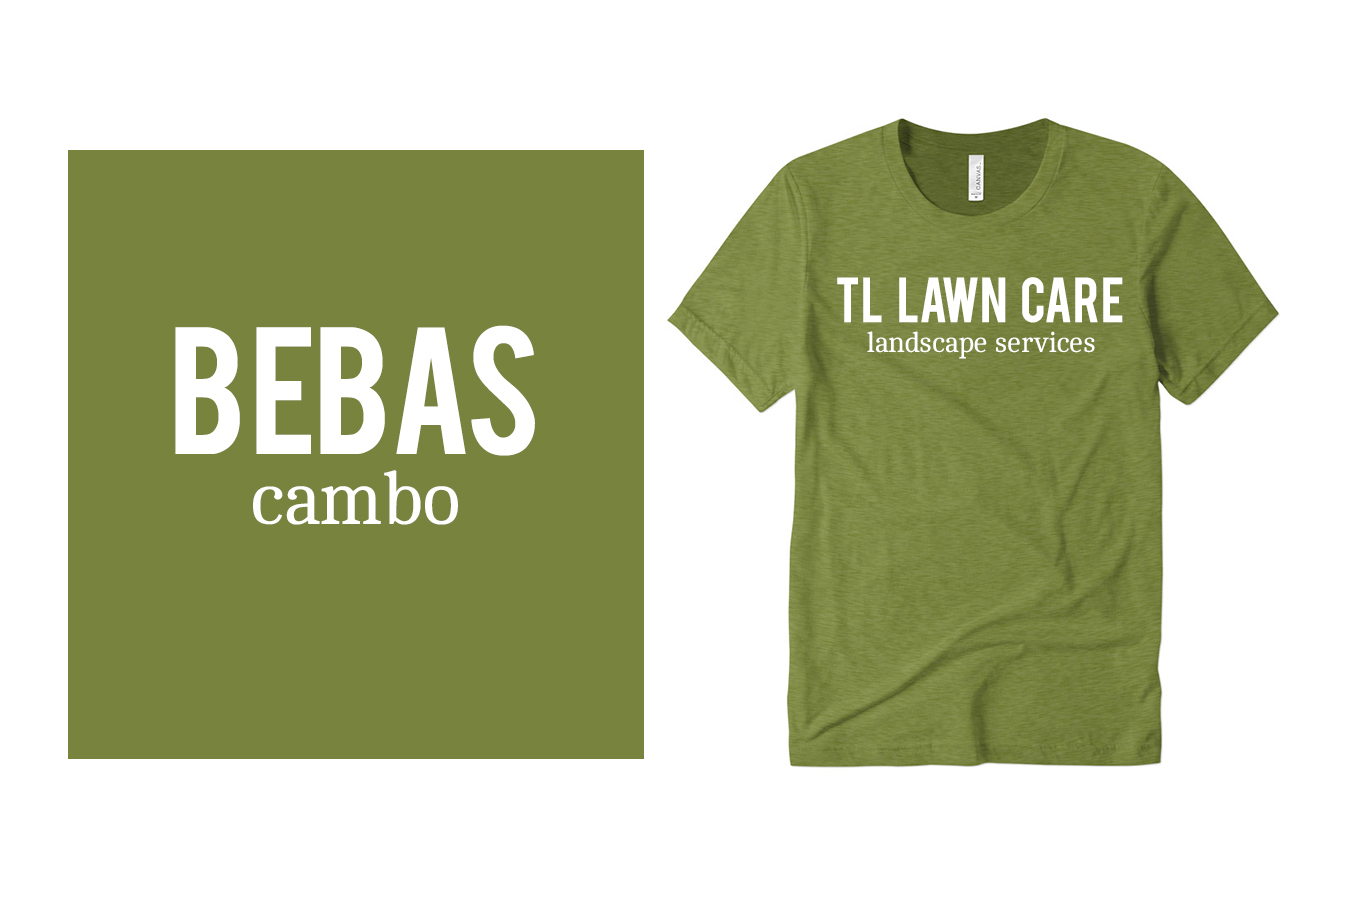 Bebas and Cambo Fonts on Custom T-Shirts